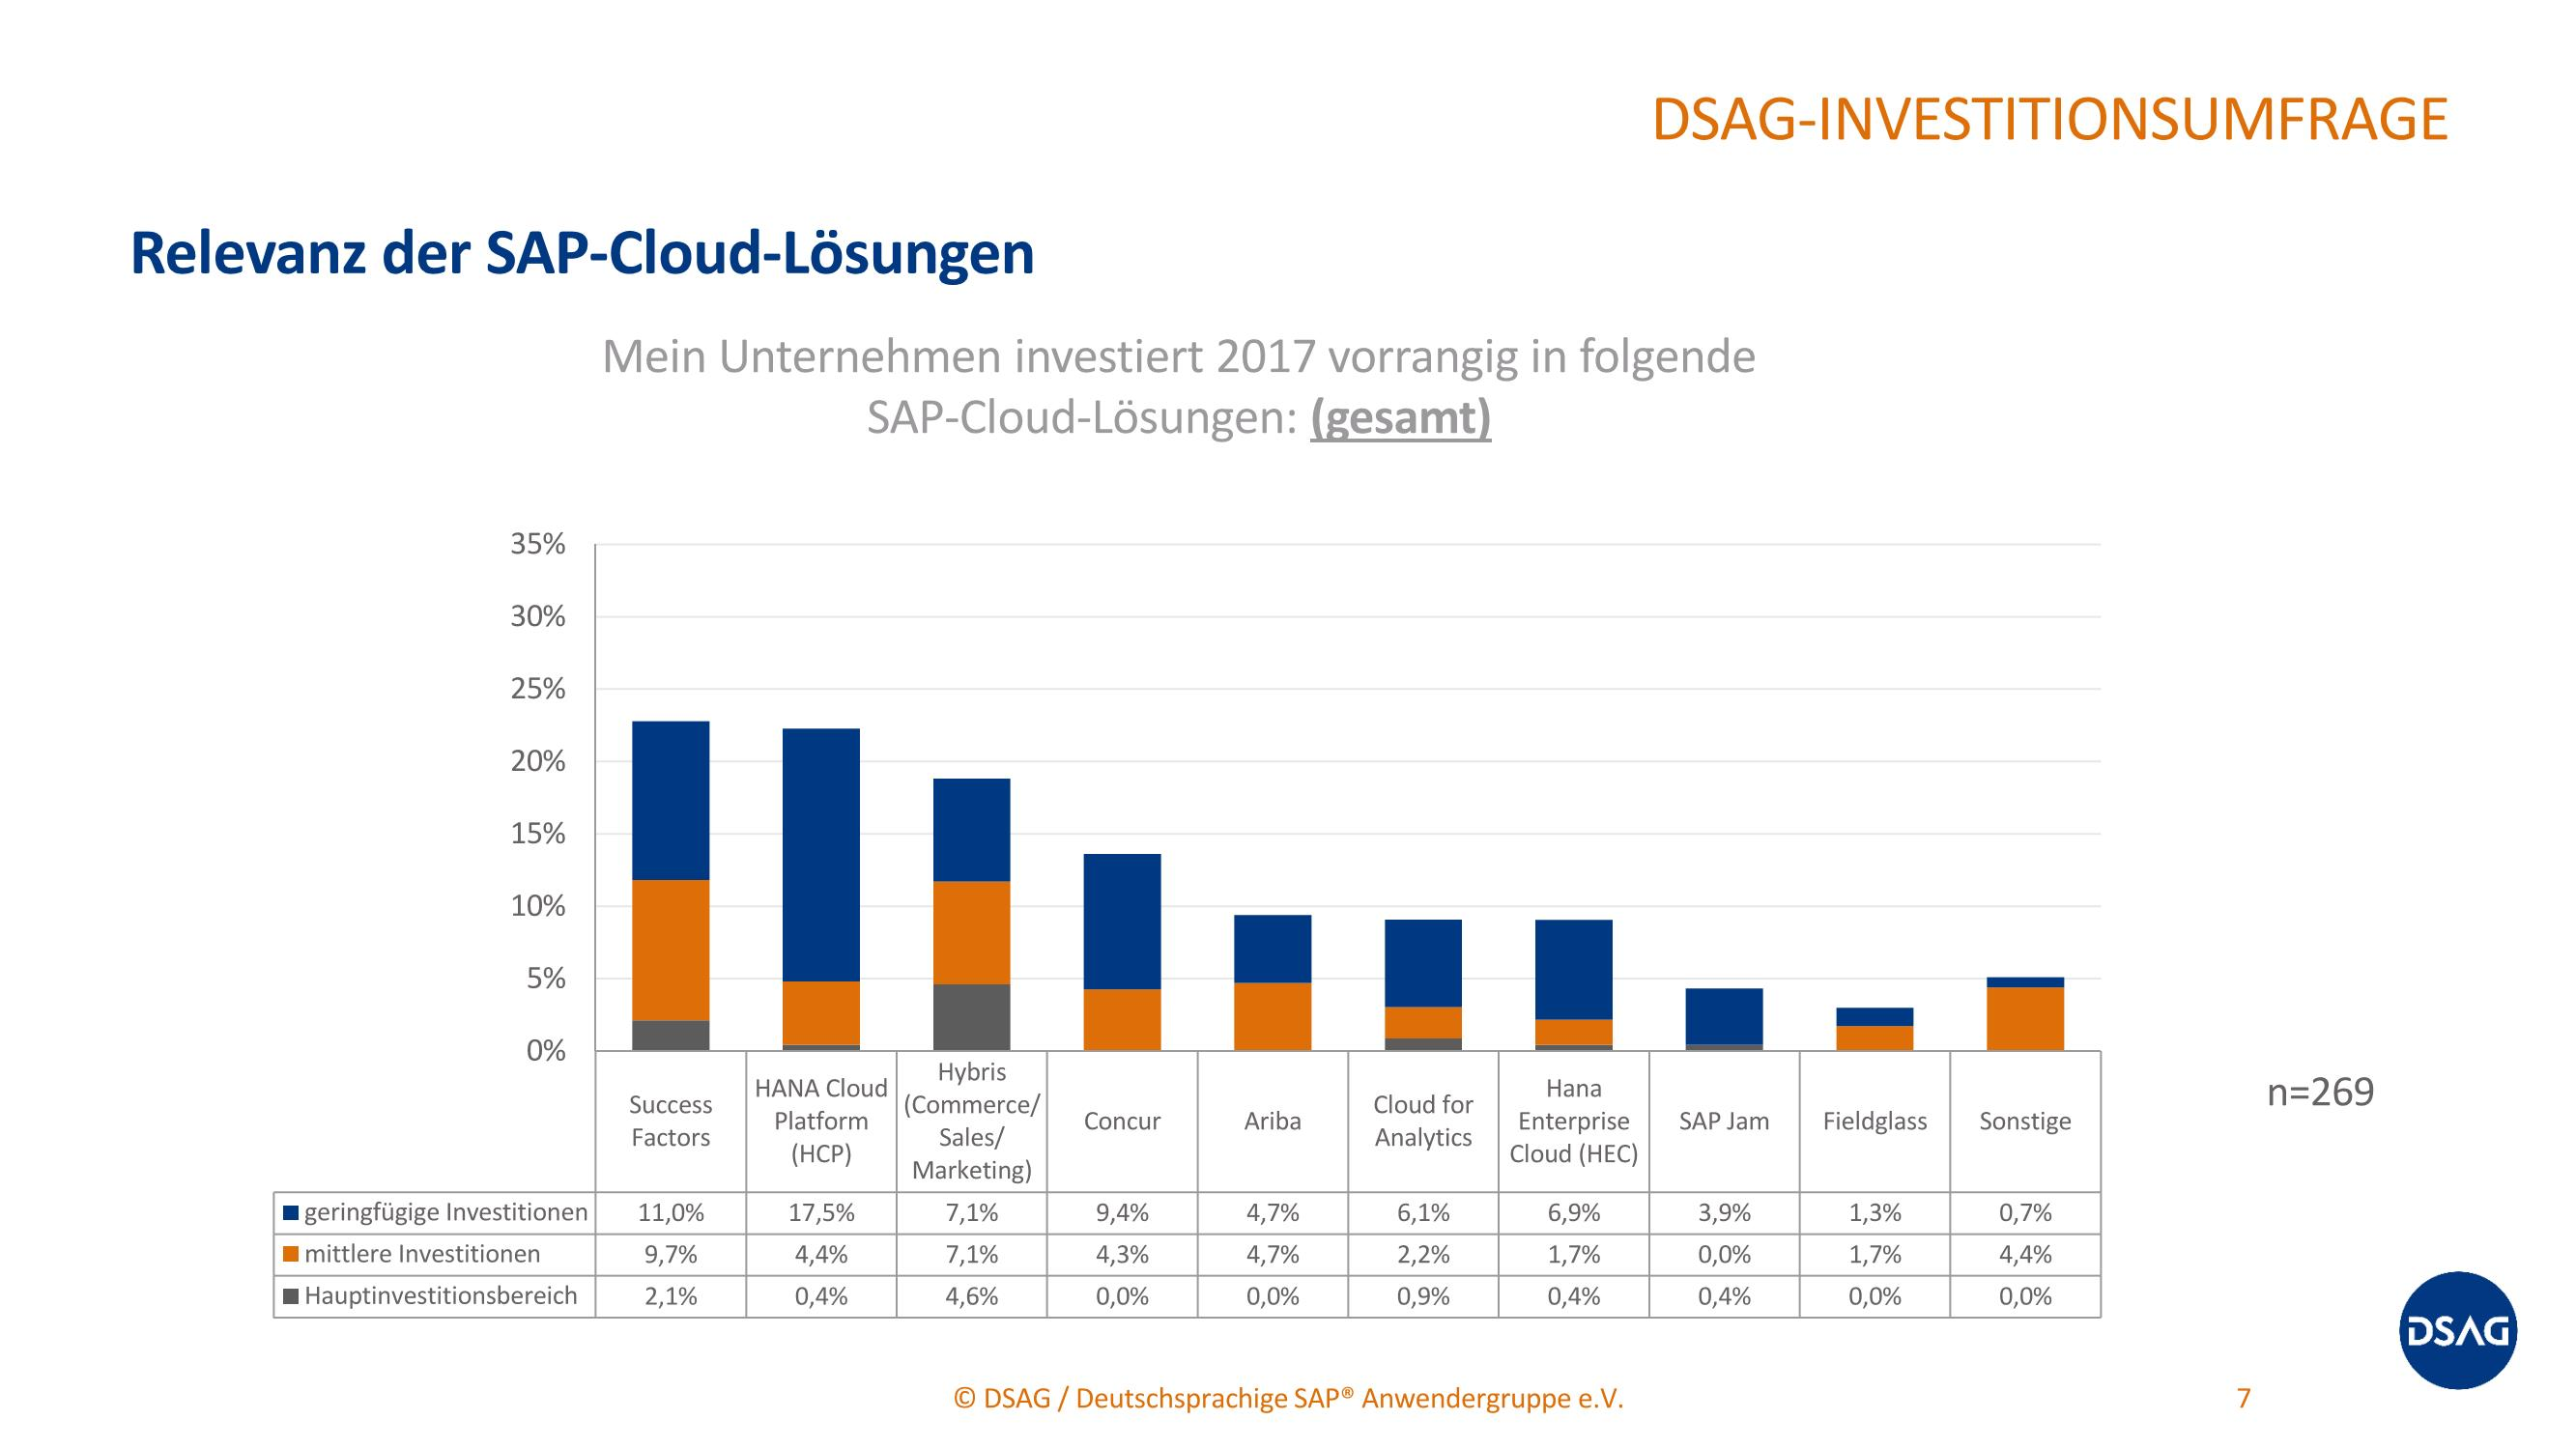 grafikdsag relevanz sap-cloud